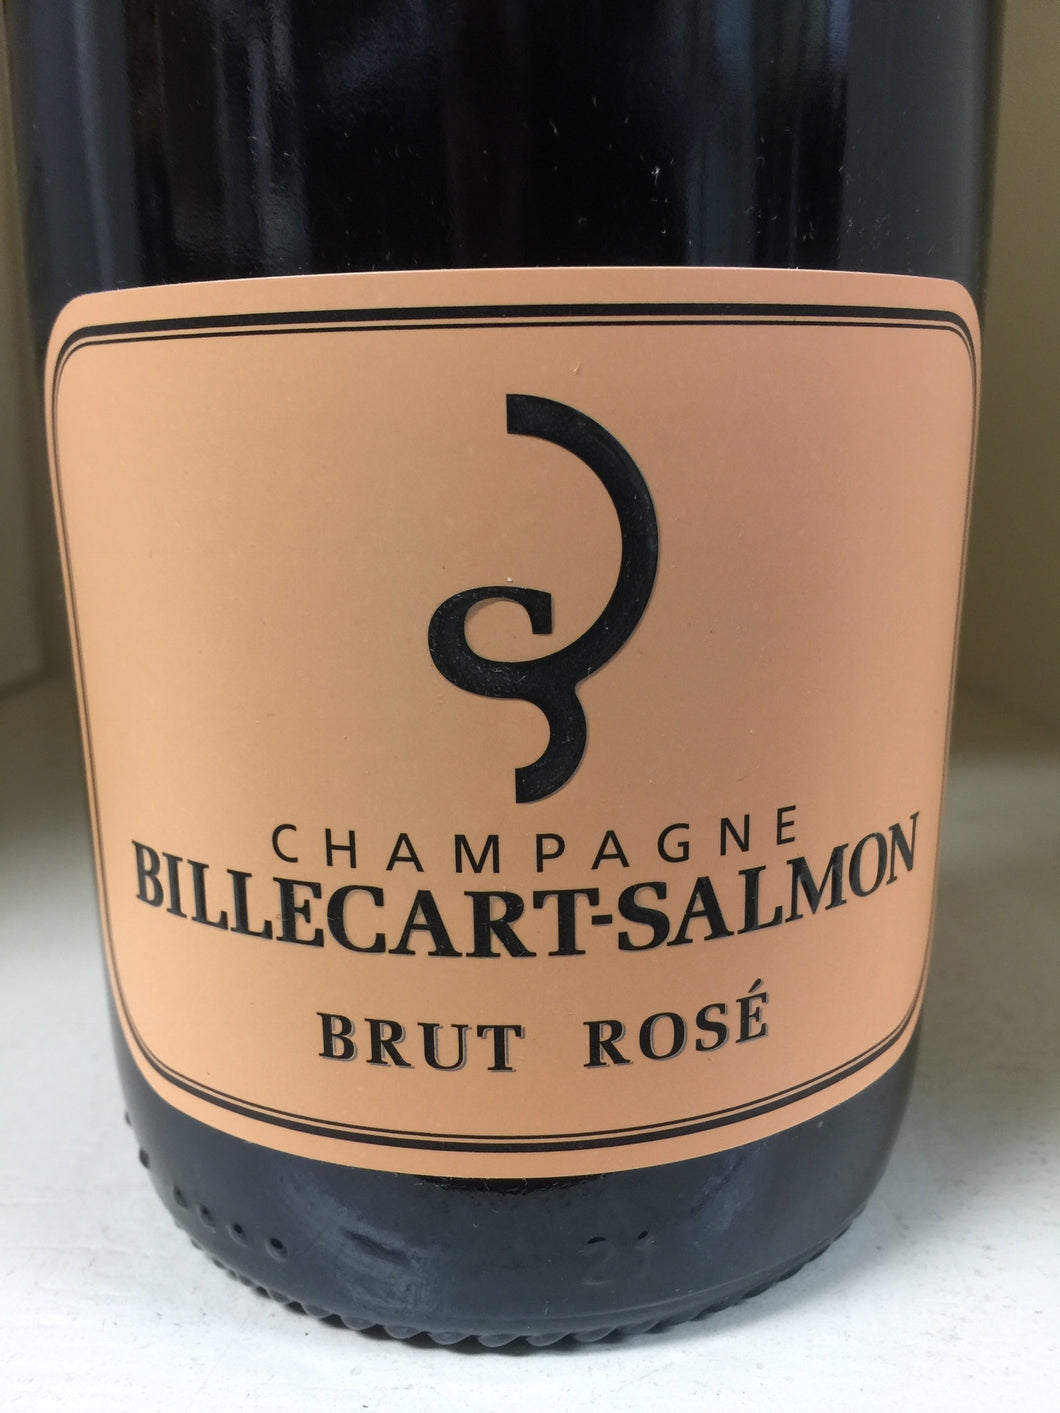 N.V. Billecart-Salmon Brut Rose